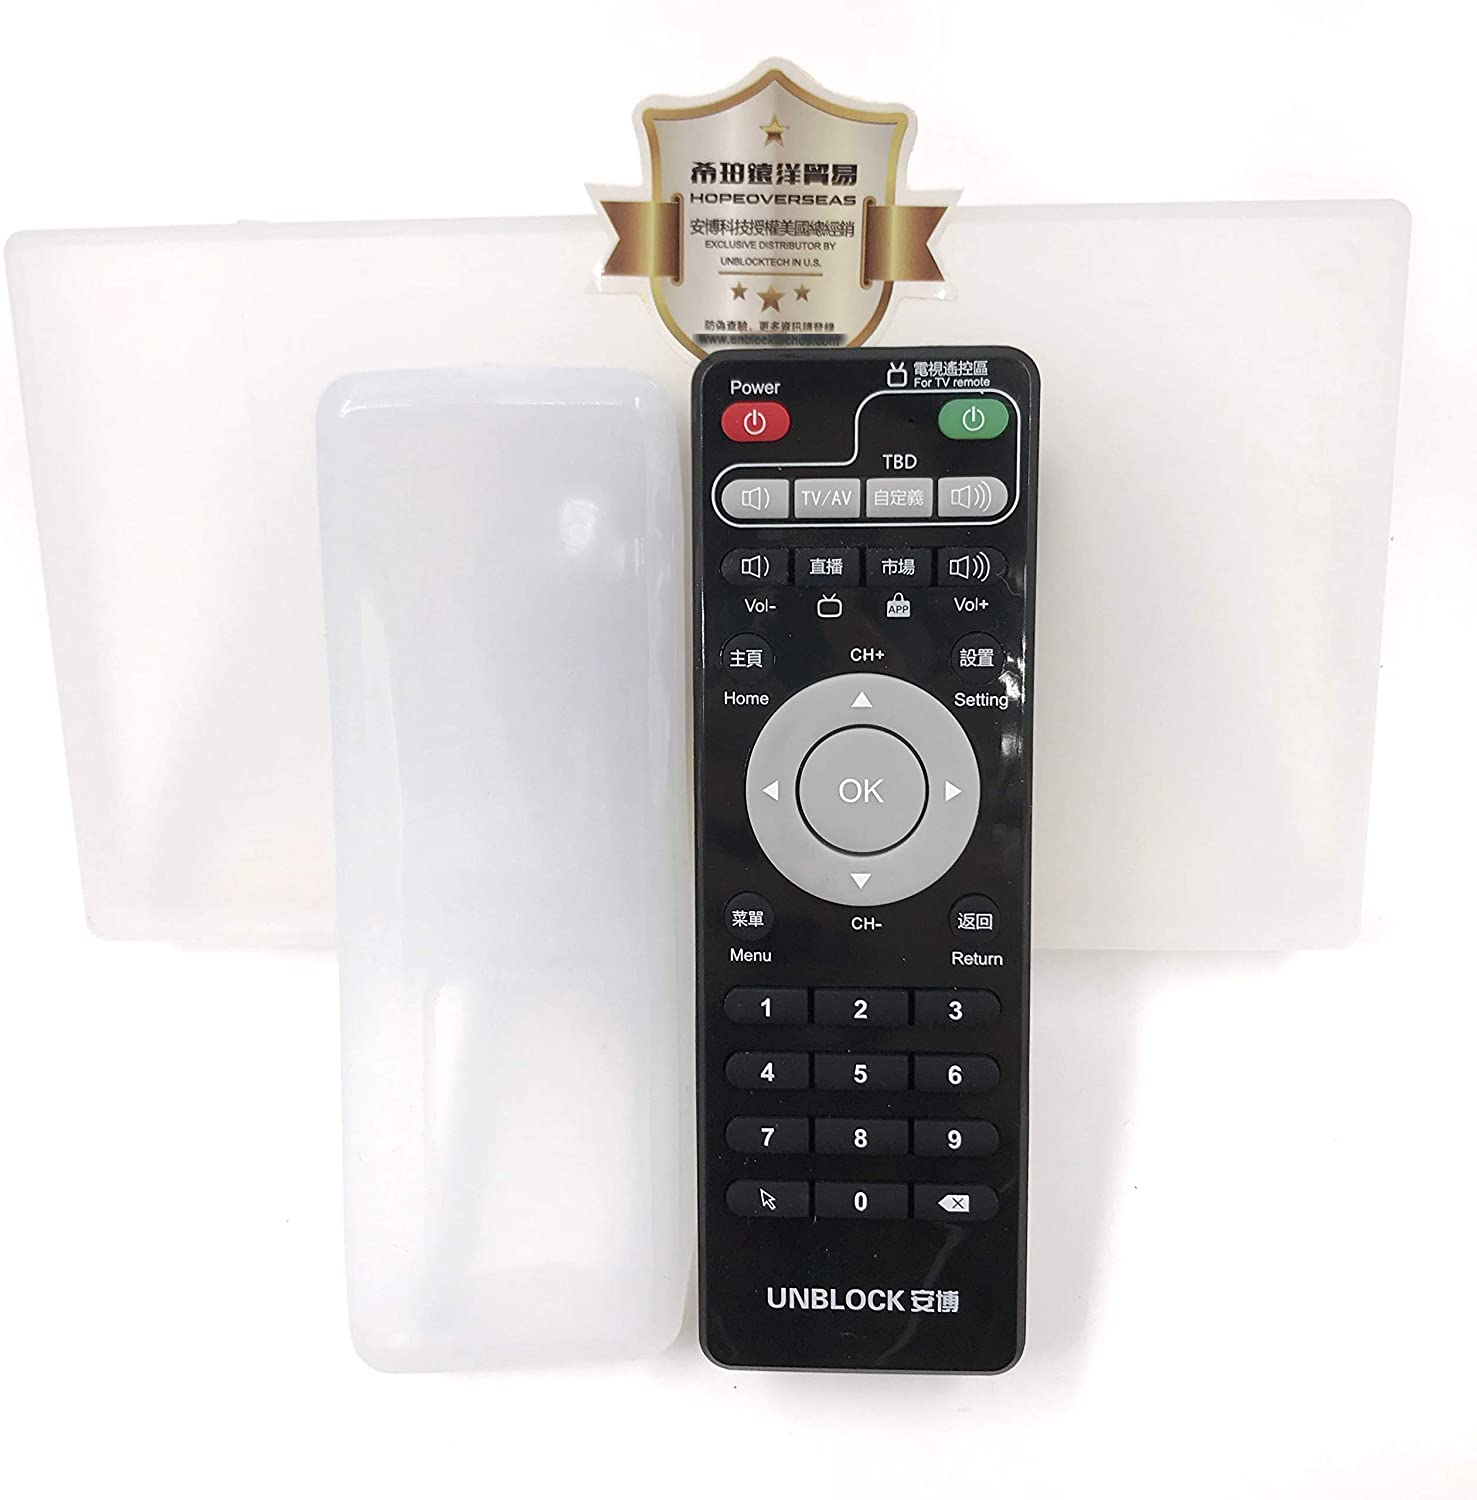 HOPE OVERSEAS Unblock tech Original Remote for ubox, with case in Pack. Support All ubox Model. Supply by Hope overseas Trading, an Authorized Distributor by unblock tech in The United States